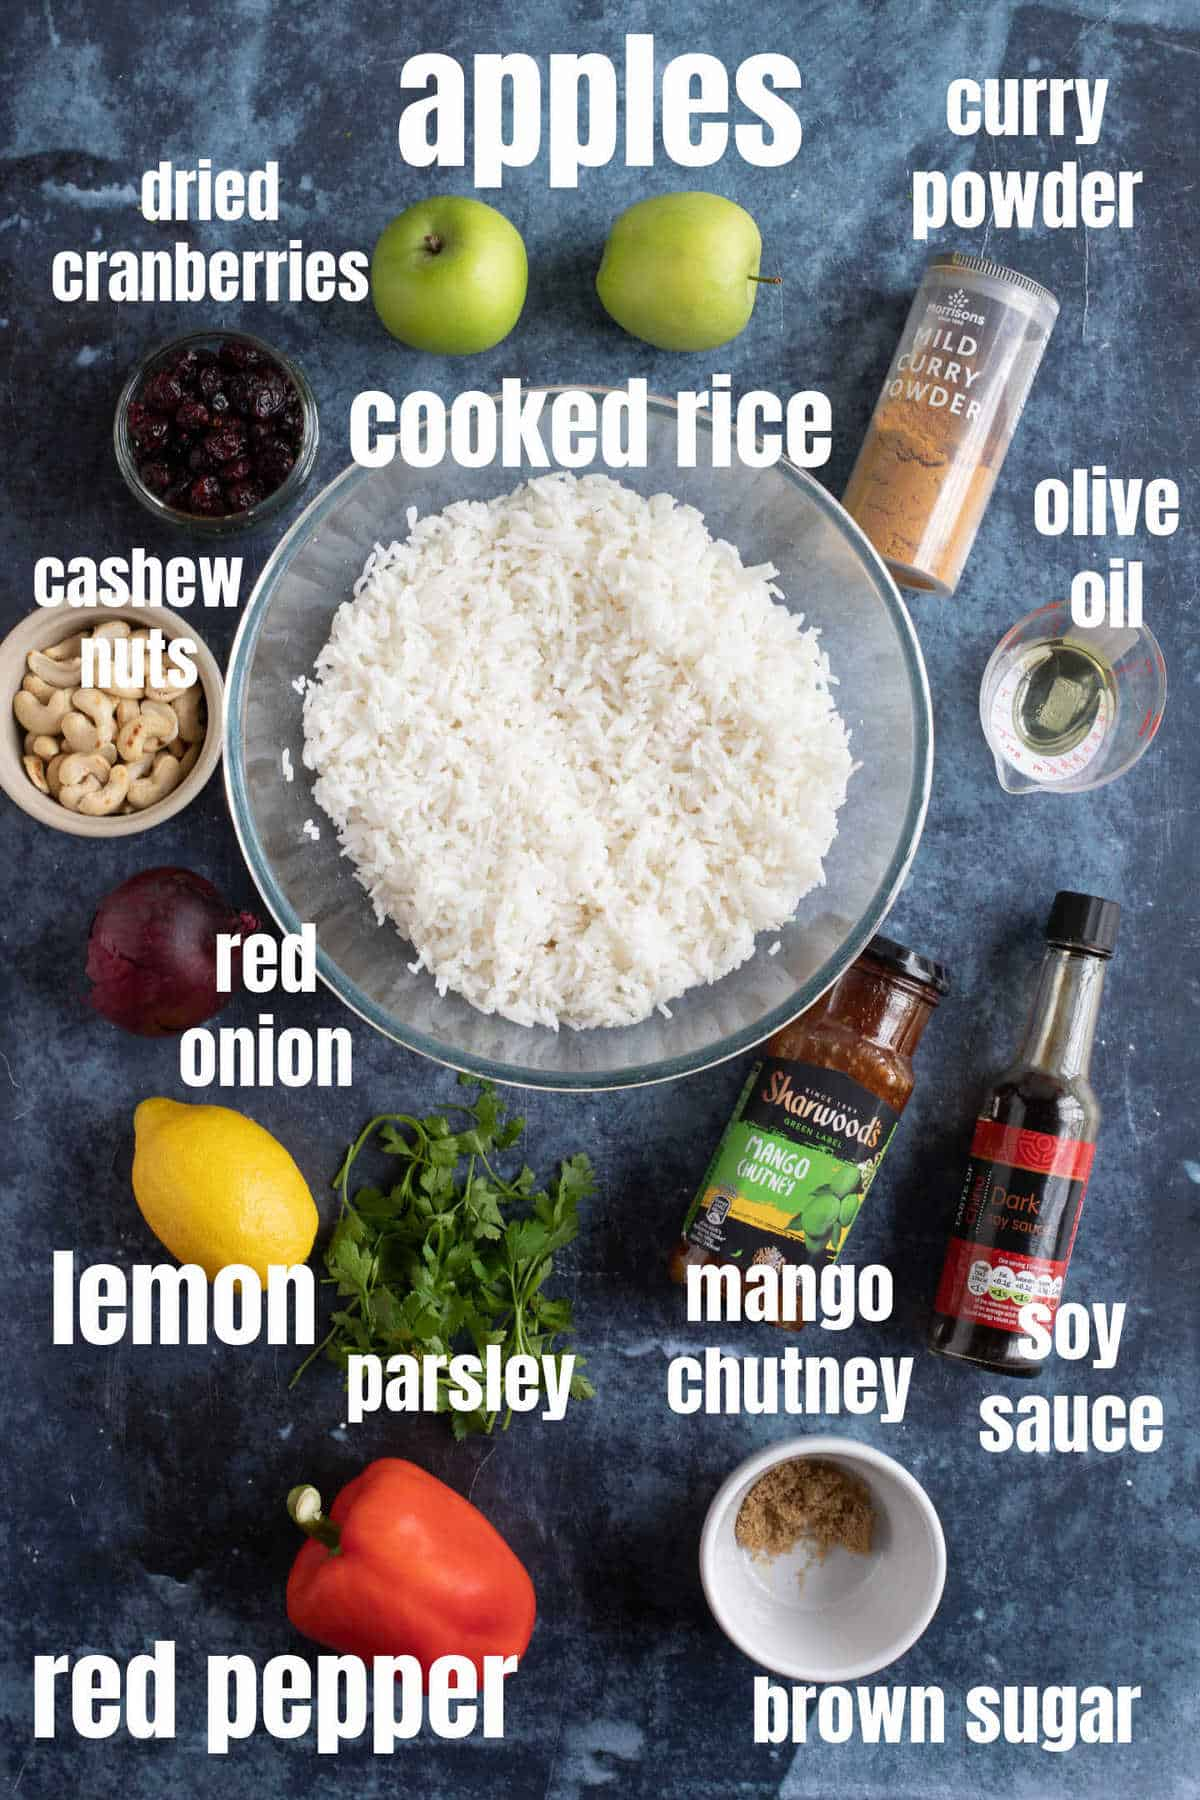 Ingredients needed for curried rice salad.